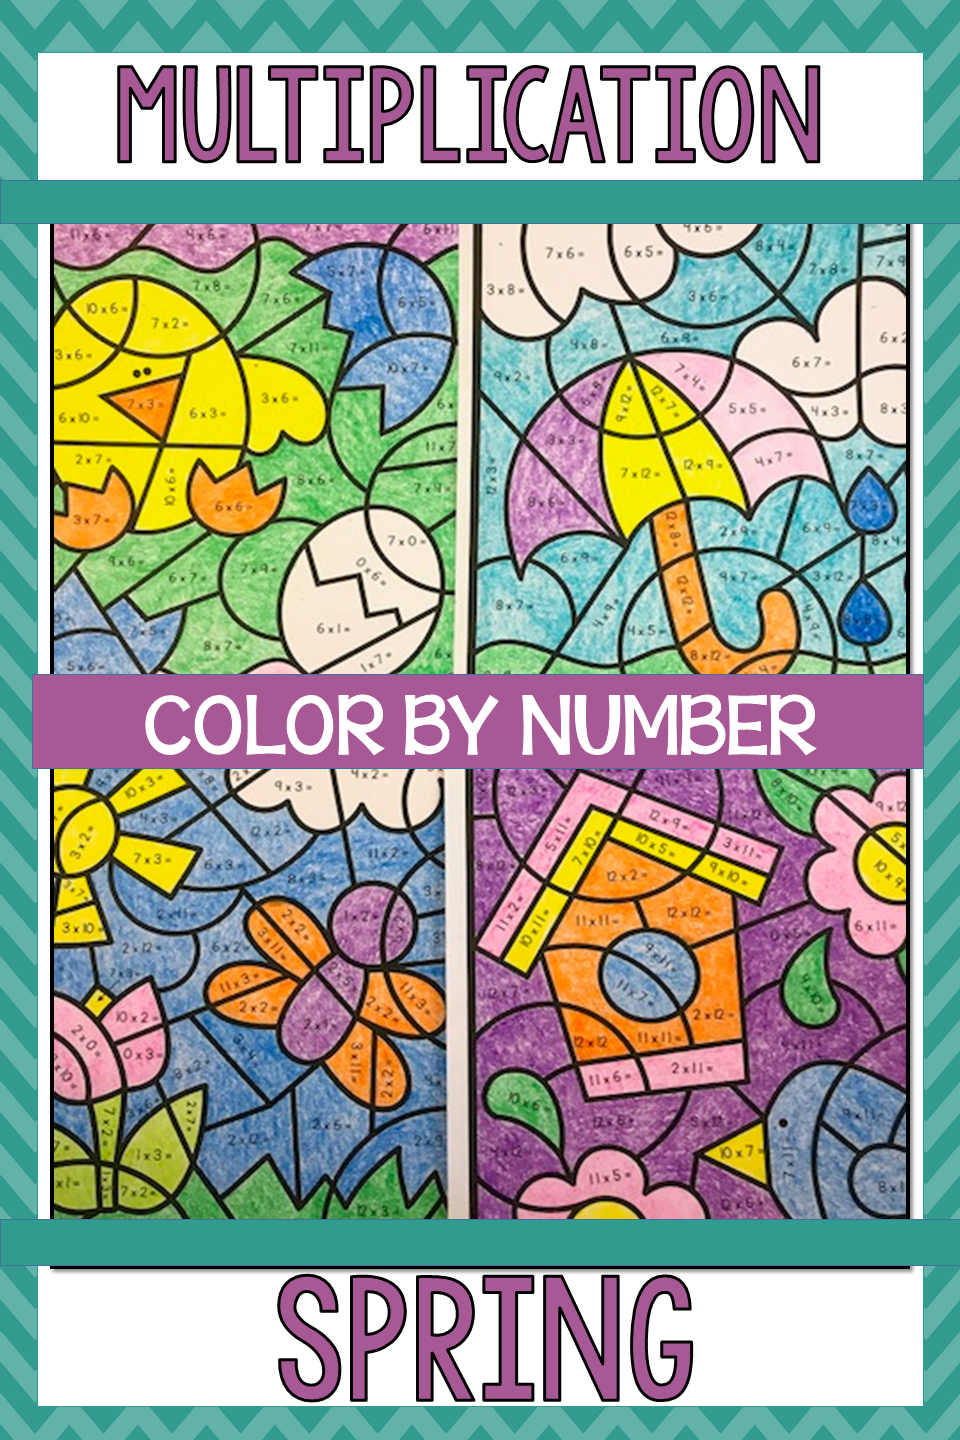 Spring Coloring Pages Multiplication Color By Number Spring Math Activities Spring Math Multiplication [ 1440 x 960 Pixel ]